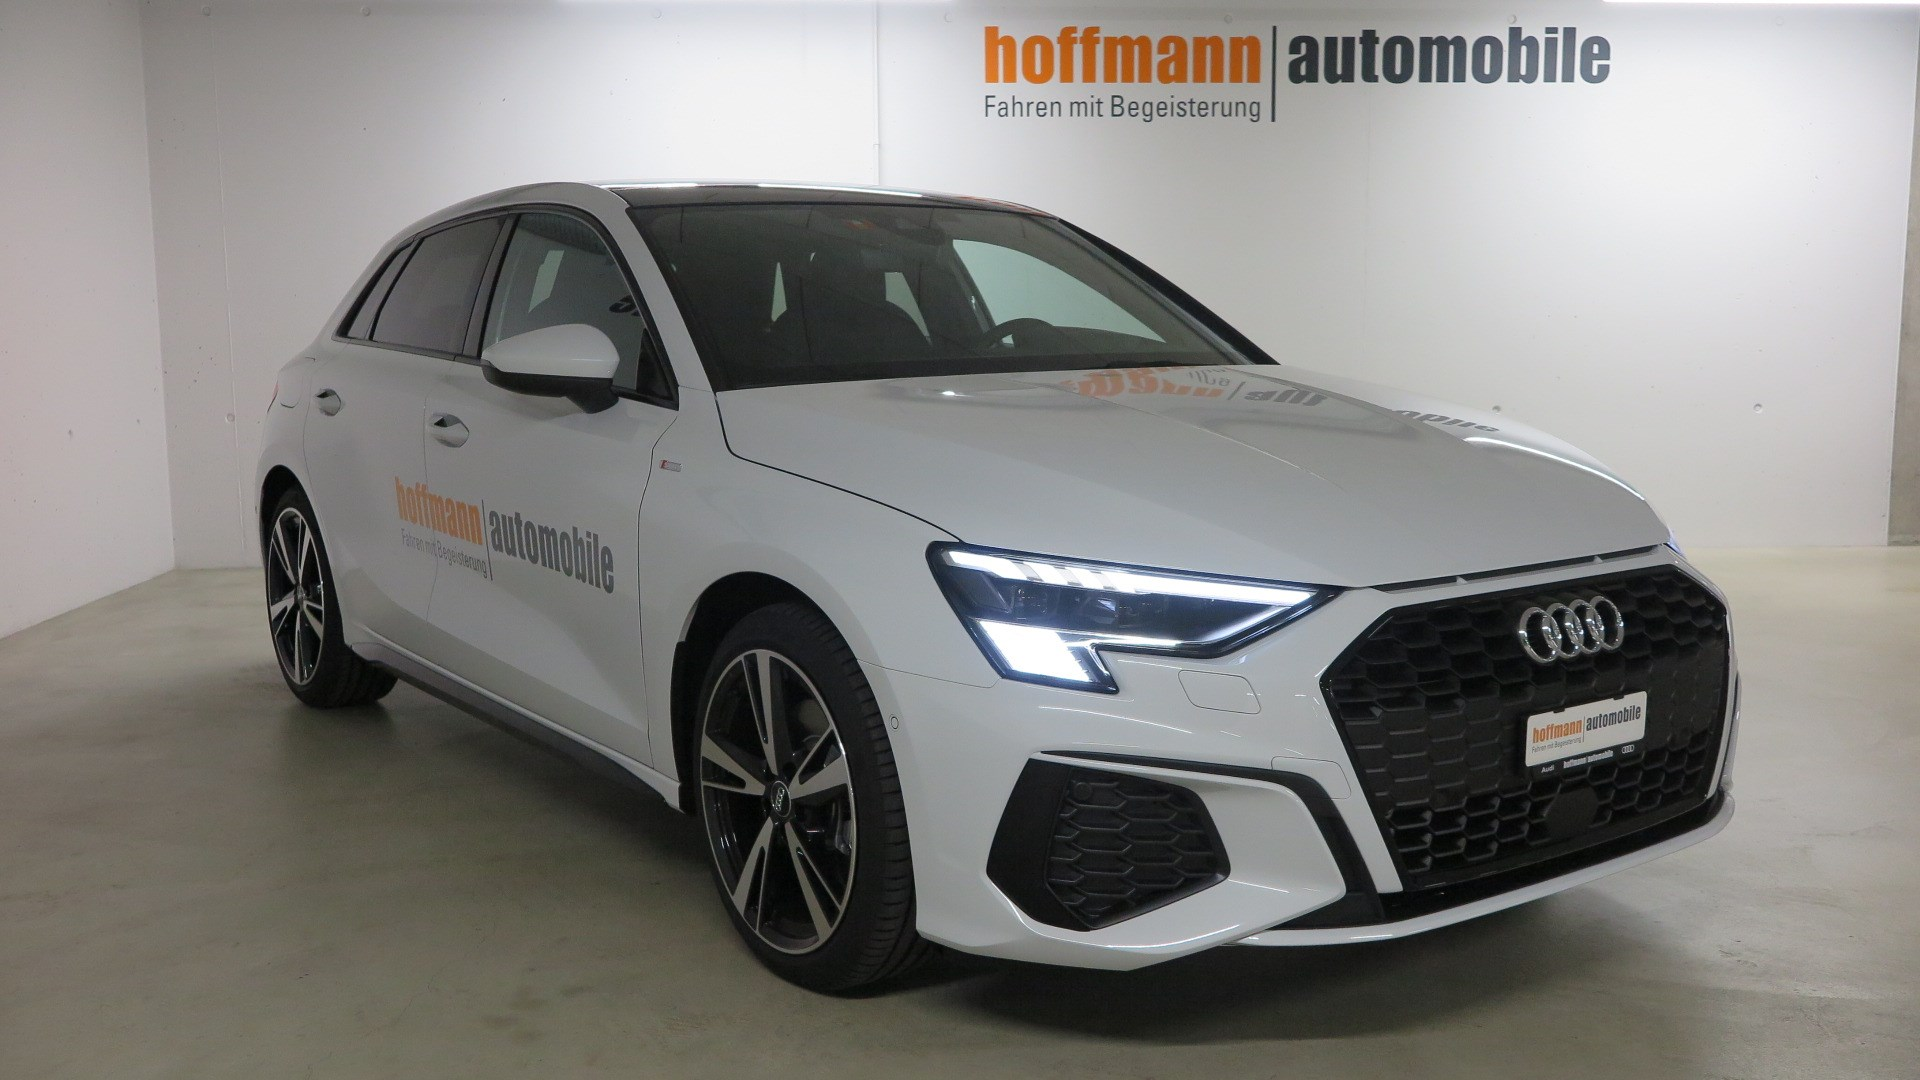 Buy Used Car Sedan Audi A3 Sportback 35 Tfsi S Line Attraction S Tronic 12000 Km At 44990 Chf On Carforyou Ch